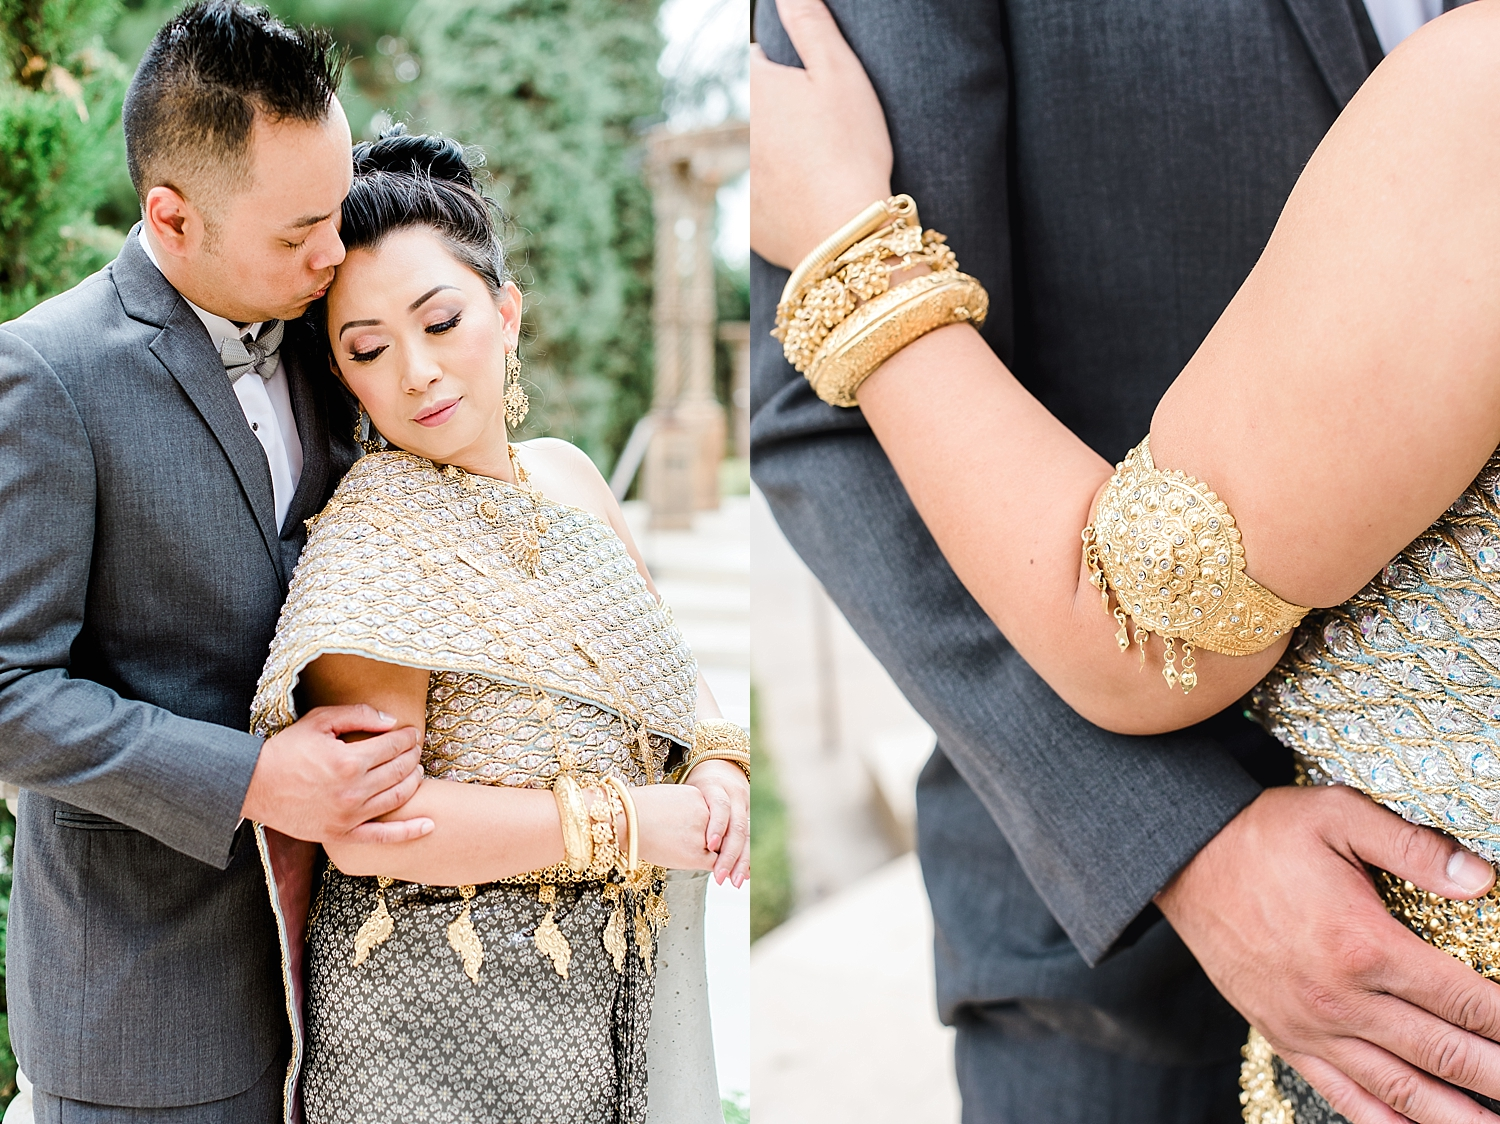 Hom and Van's First Look photo session at the Ashley Castle in Chandler, Arizona, photographed by Jade Min of Jade Min Photography.